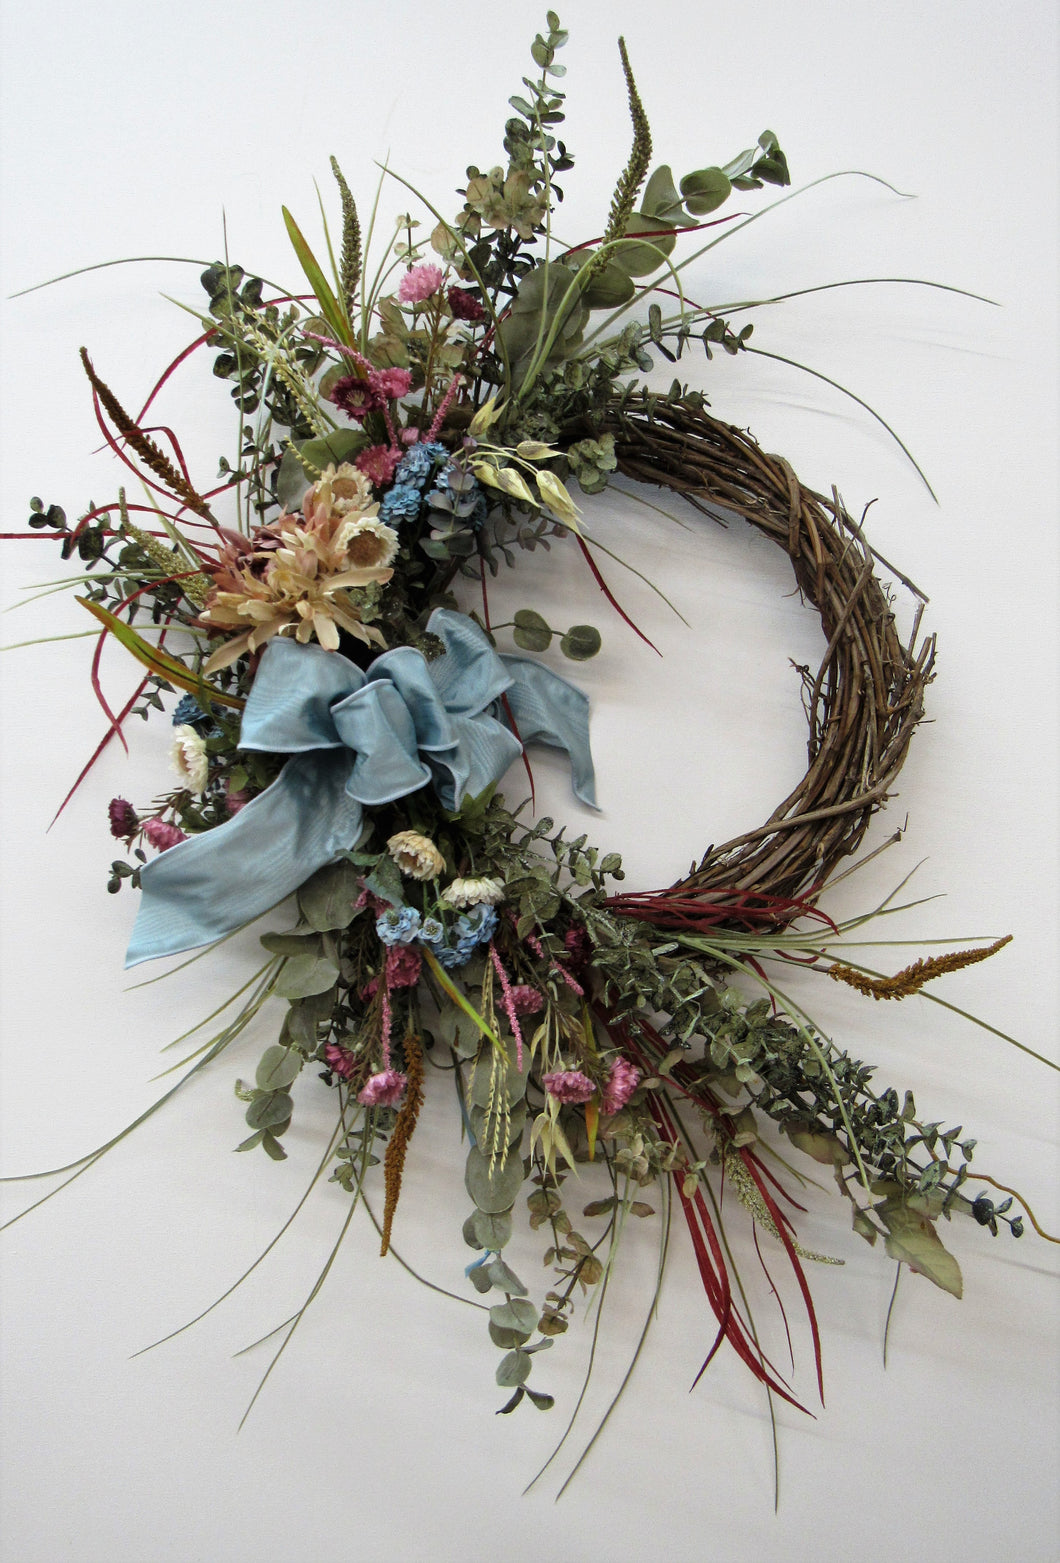 Gallery/Harv157 - April's Garden Wreath